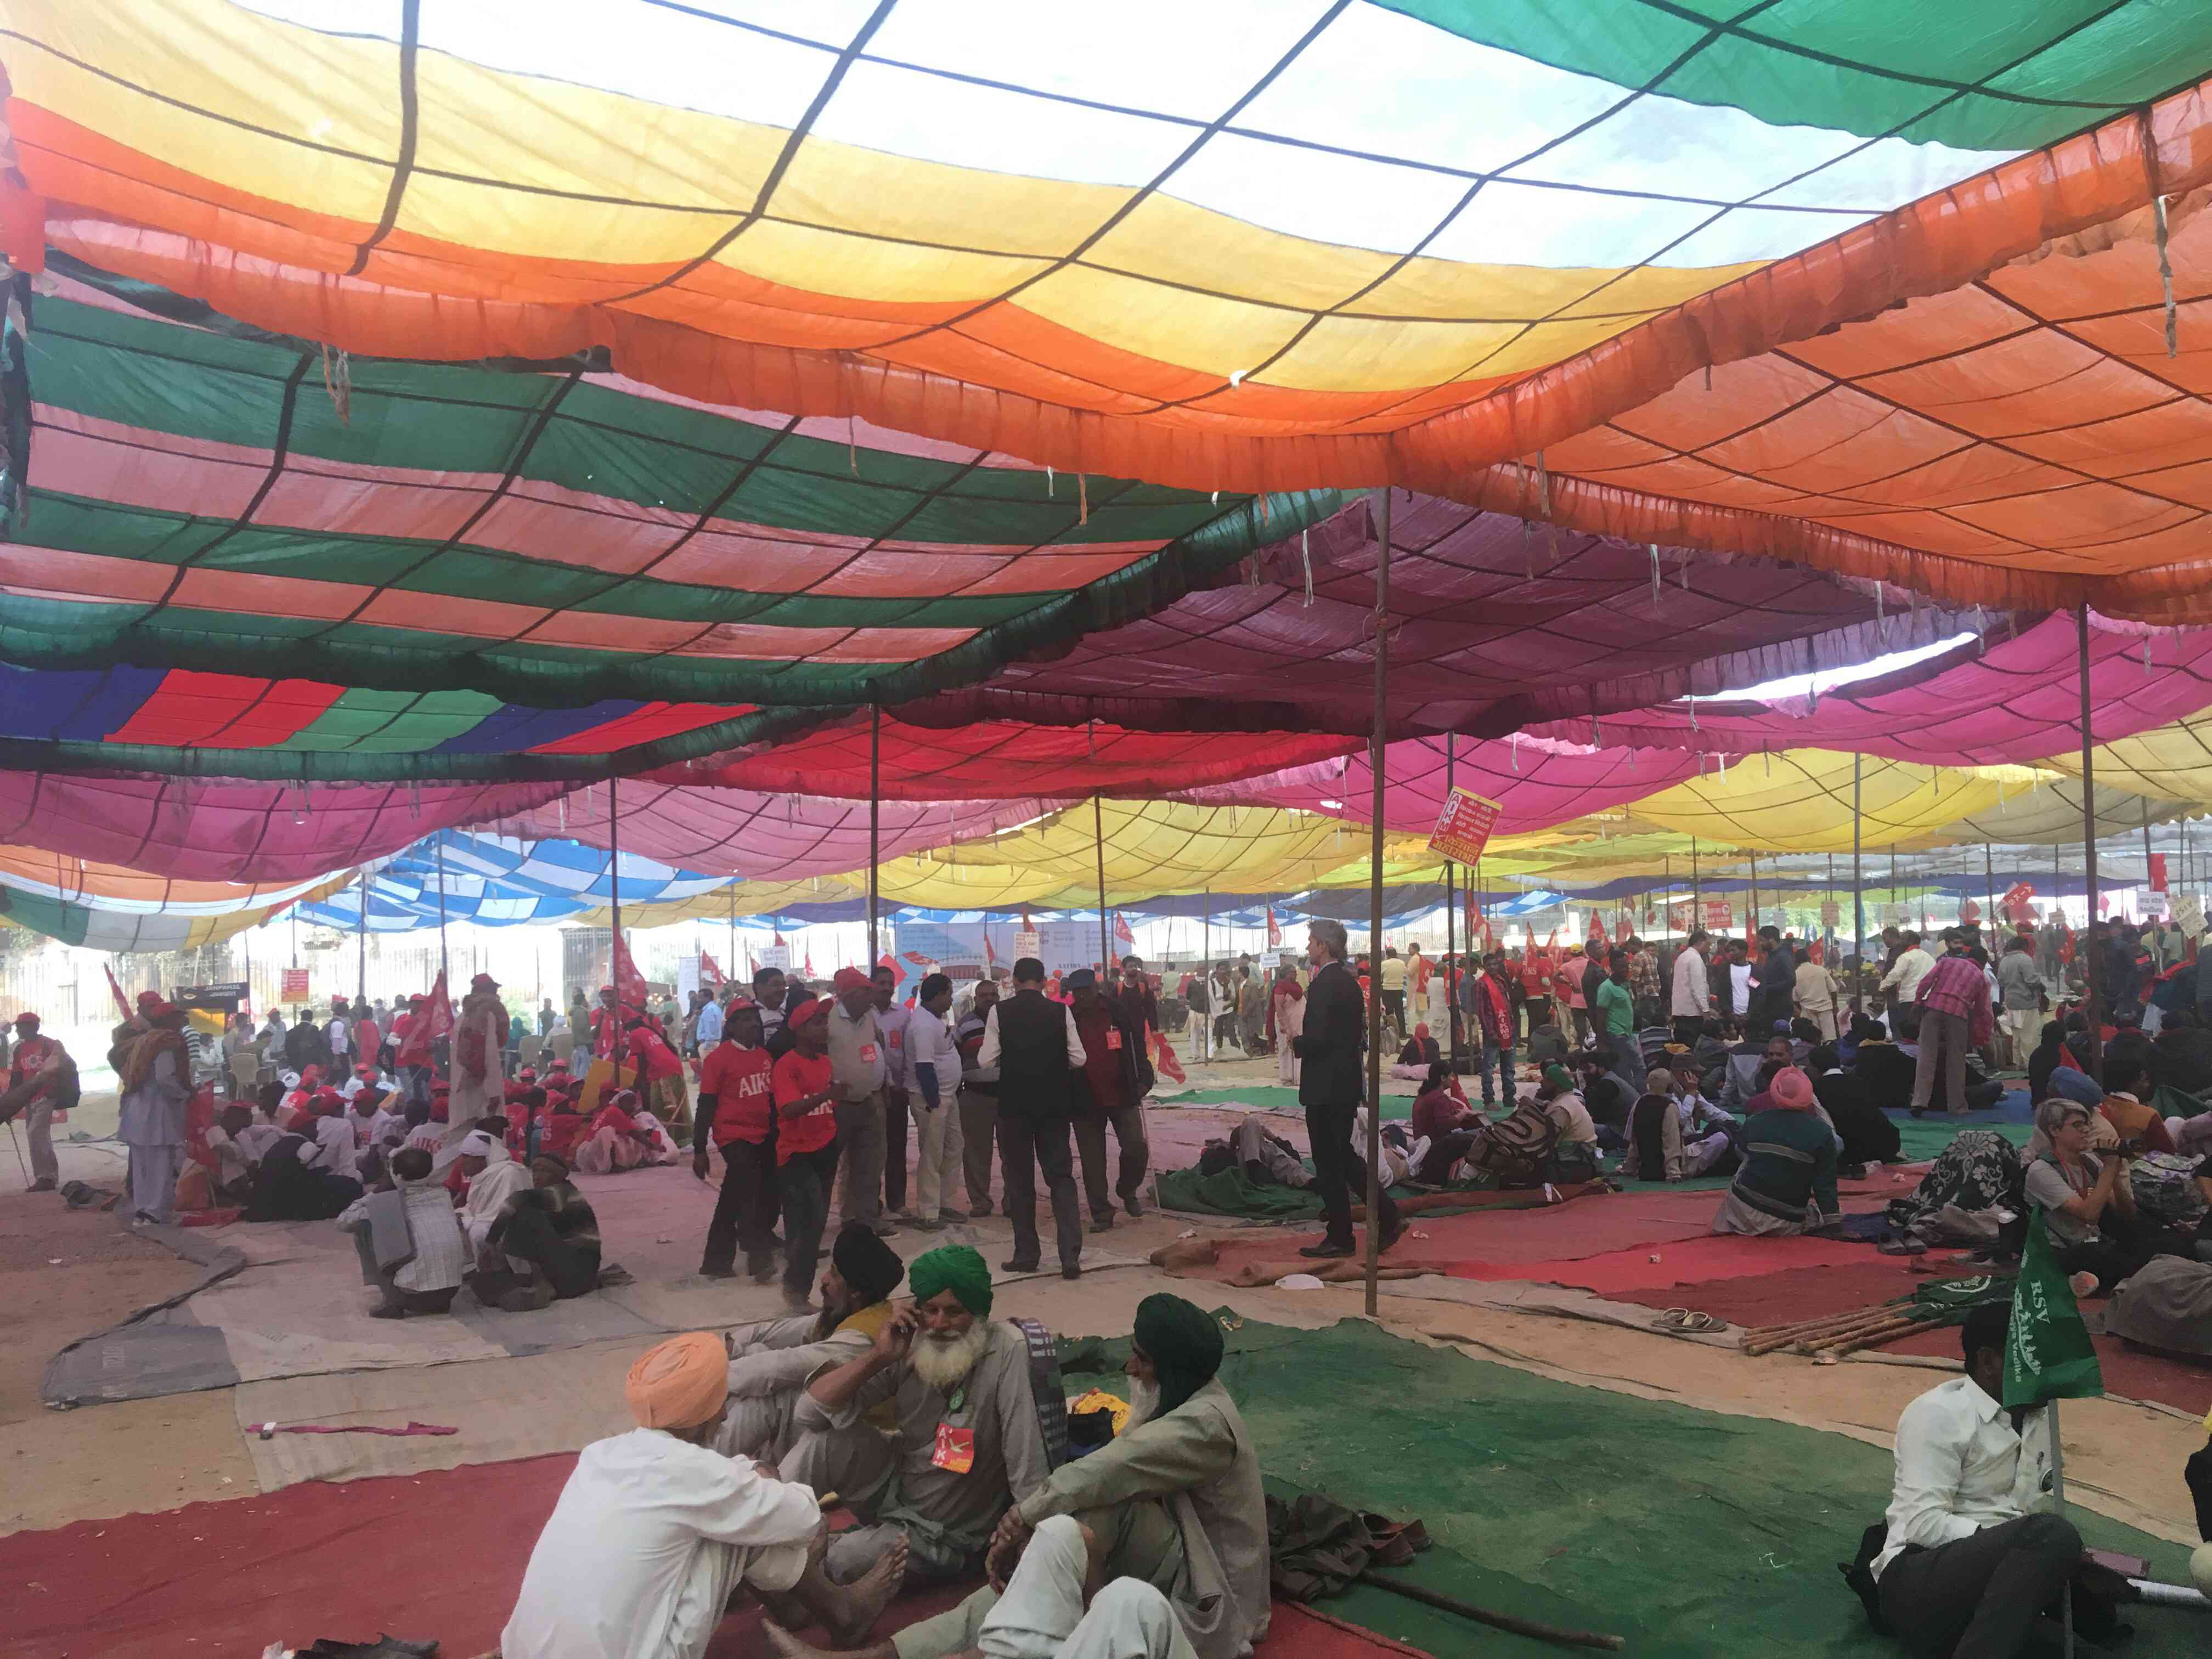 Farmers participating in the Kisan Mukti March gathered at Ramlila Maidan in central Delhi after marching from different assembly points in the city. (Photo credit: Vijayta Lalwani).